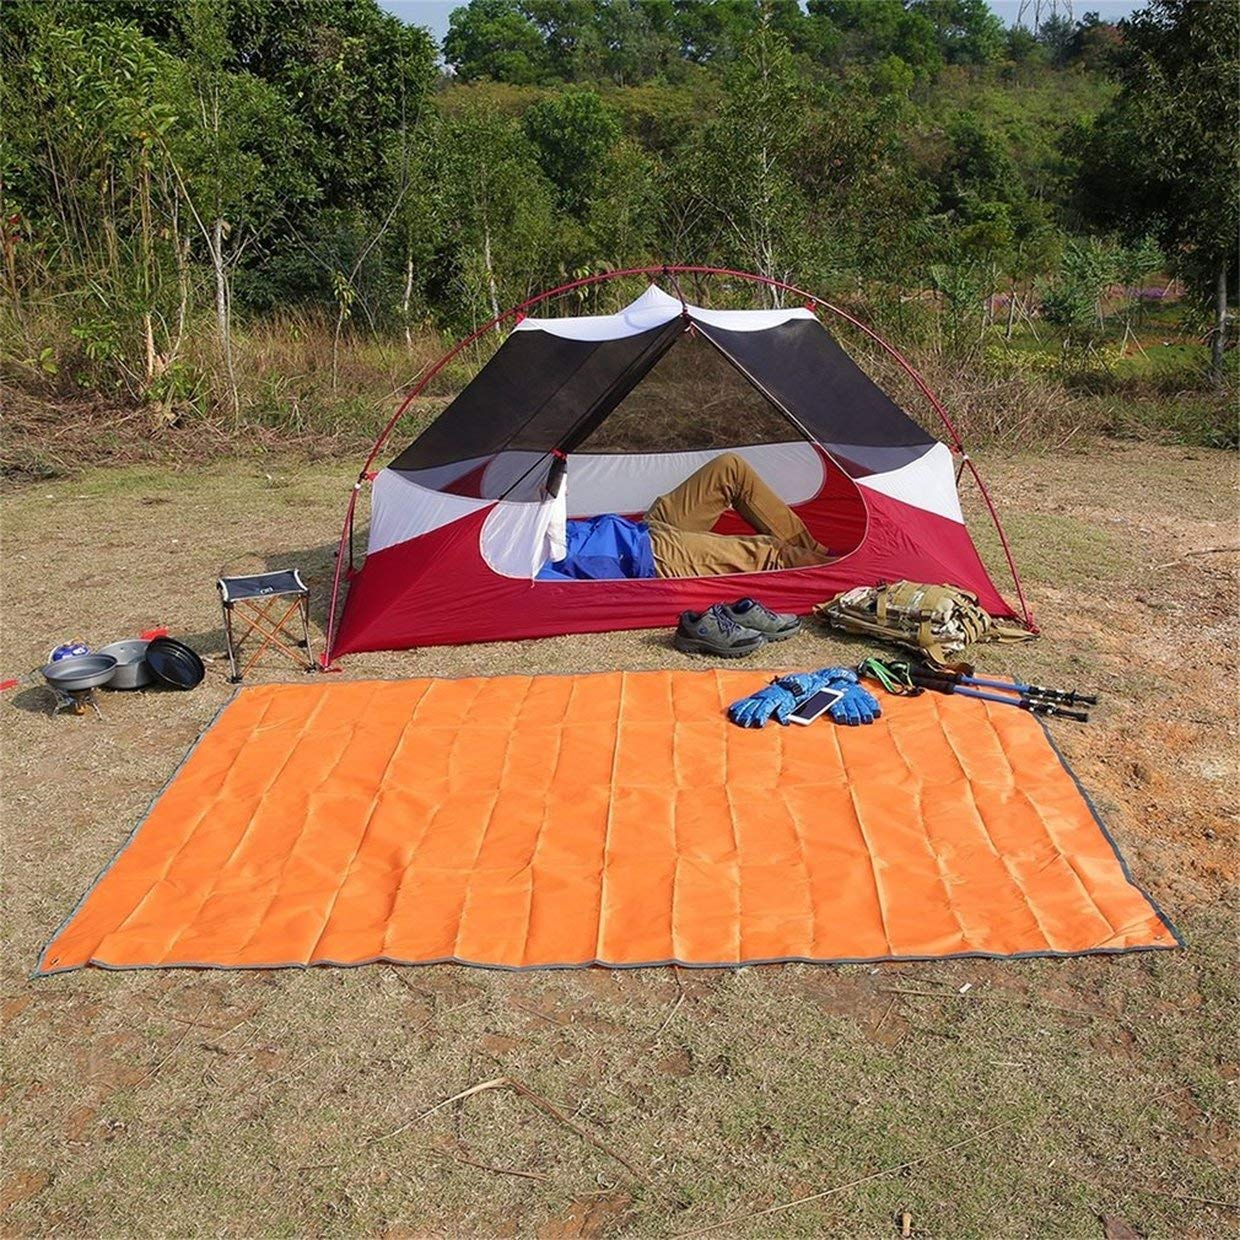 Qewmsg OUTAD Waterproof Camping Beach Tarp Mat for Picnics Tent Footprint Sunshade